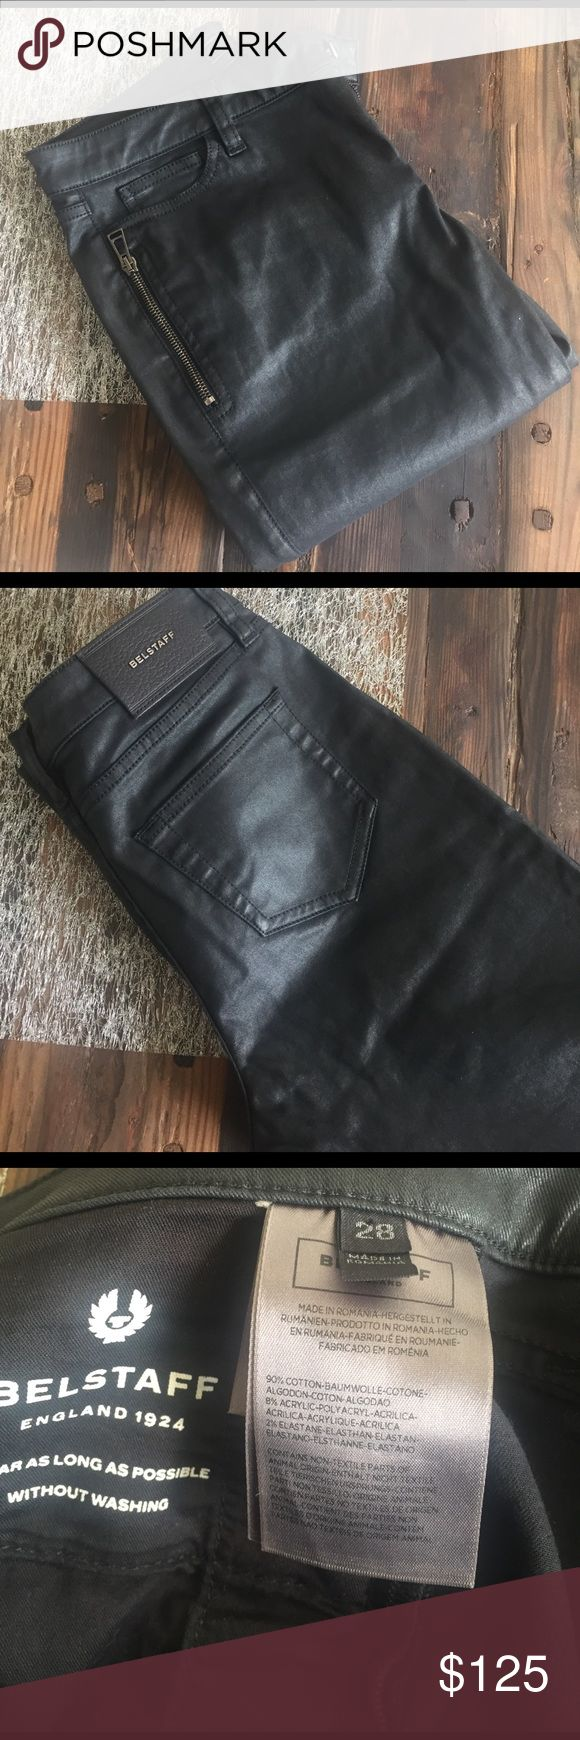 Balstaff coated cotton ankle jeans Channel your inner rock chick with these black coated jeans. Cropped/ankle length let you show off your shoes and allows you to take those from day to night. The best part is that they are totally washable. Belstaff Jeans Ankle & Cropped